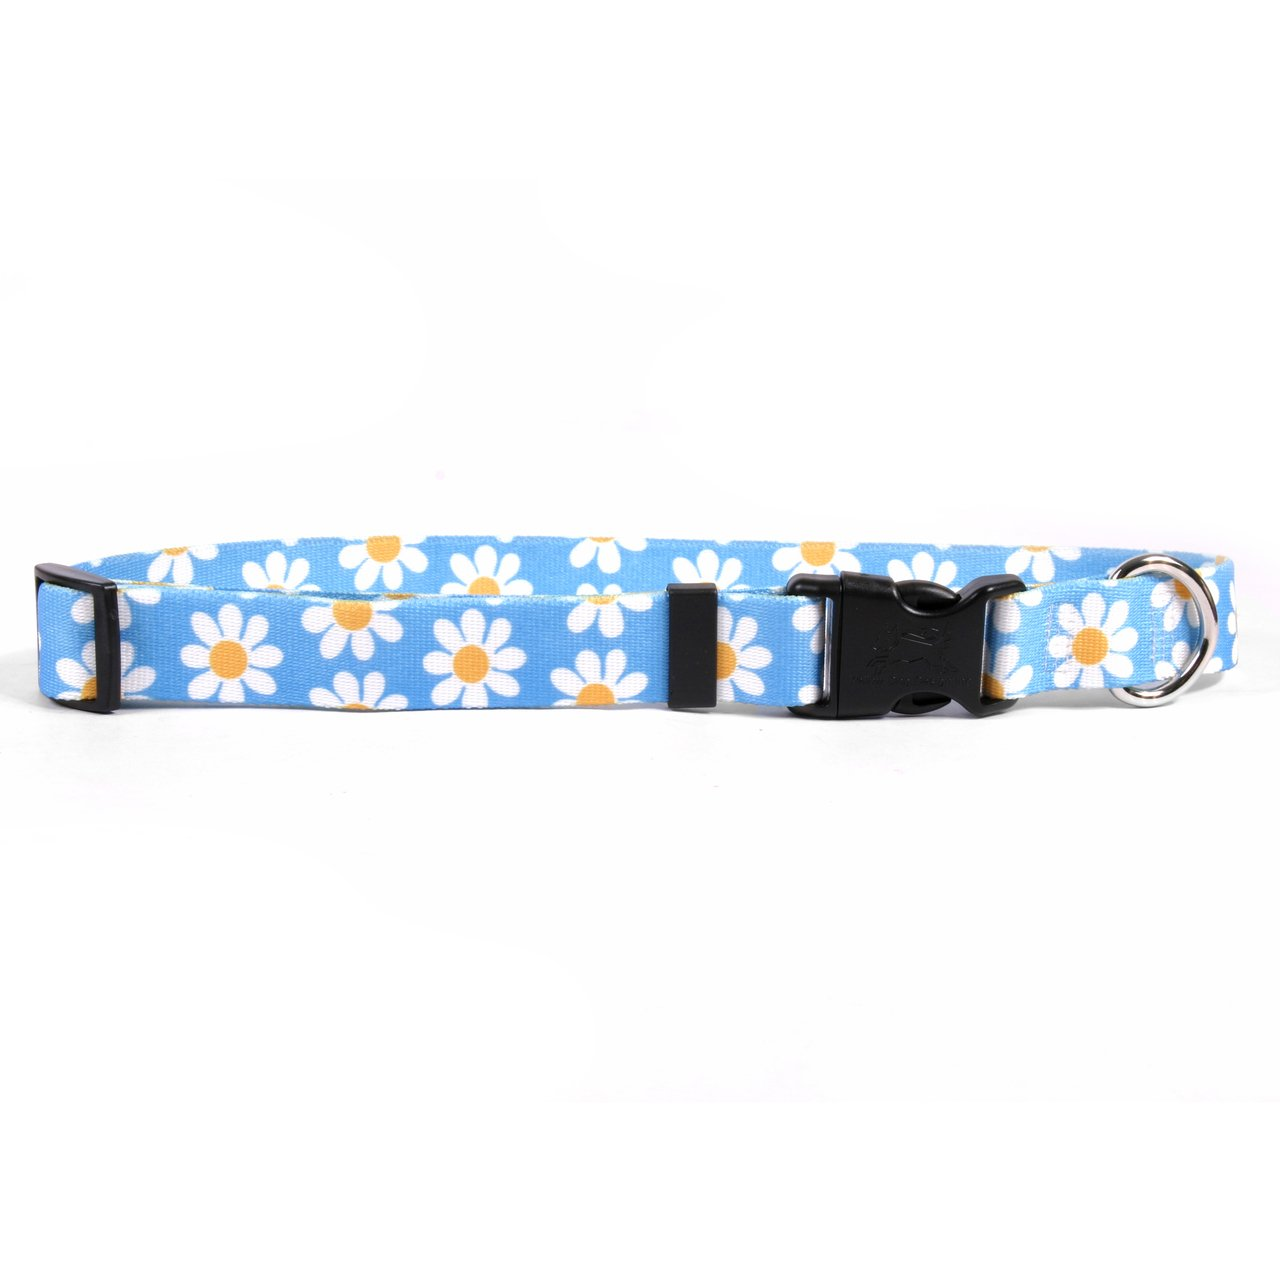 Yellow Dog Design Blue Daisy Dog Collar Fits Neck 14 to 20'', Medium 1'' Wide by Yellow Dog Design